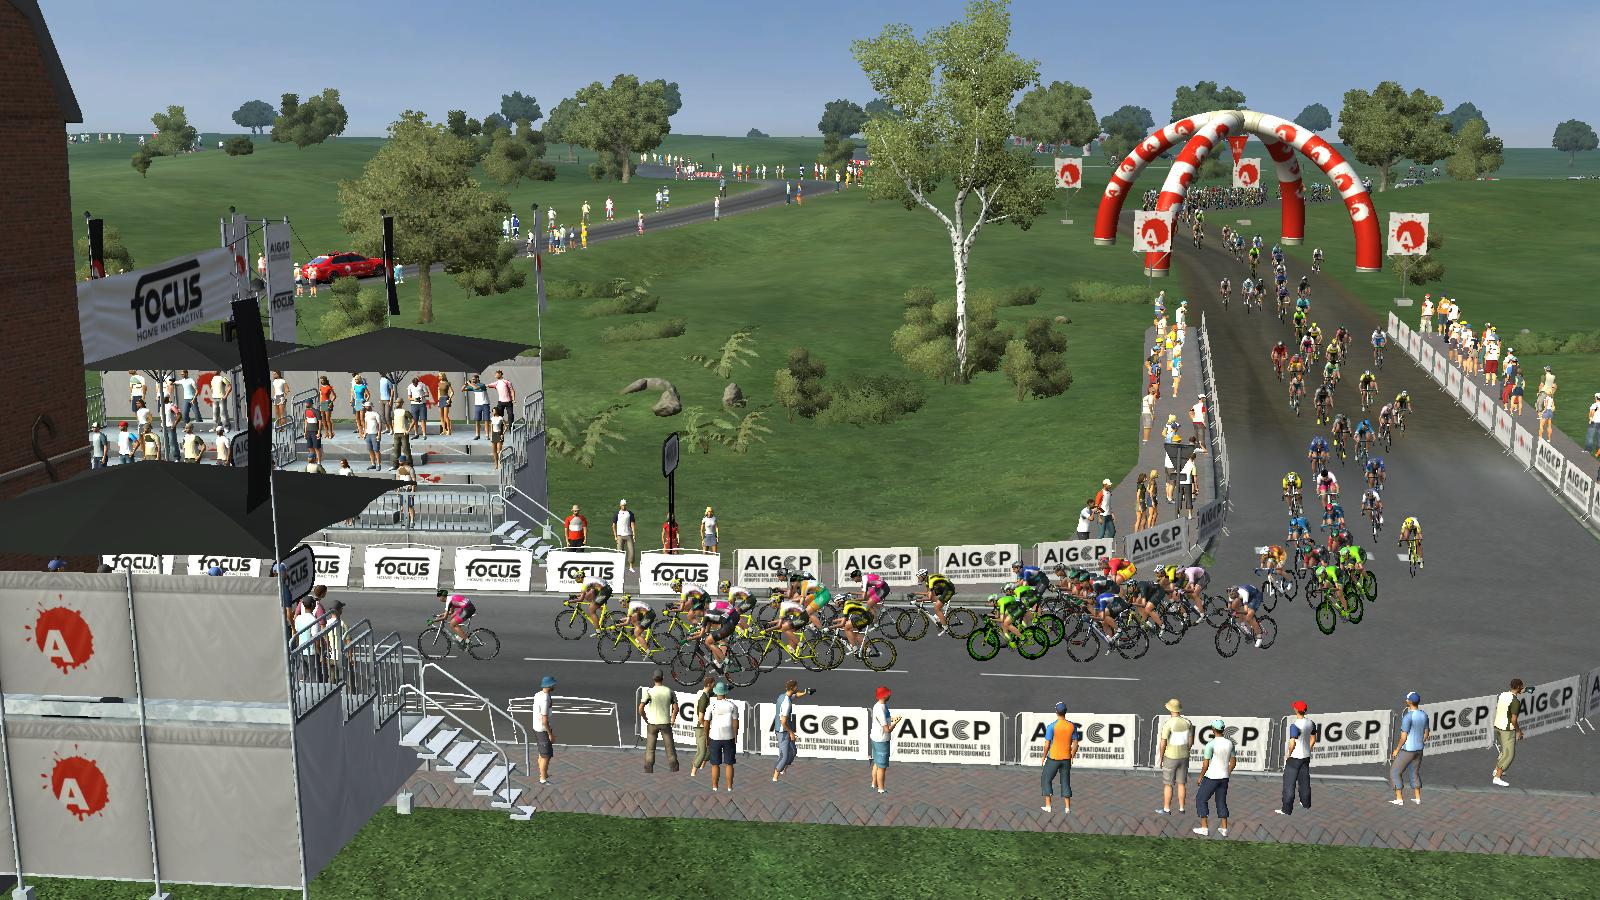 pcmdaily.com/images/mg/2019/Races/PTHC/Rheden/13.jpg